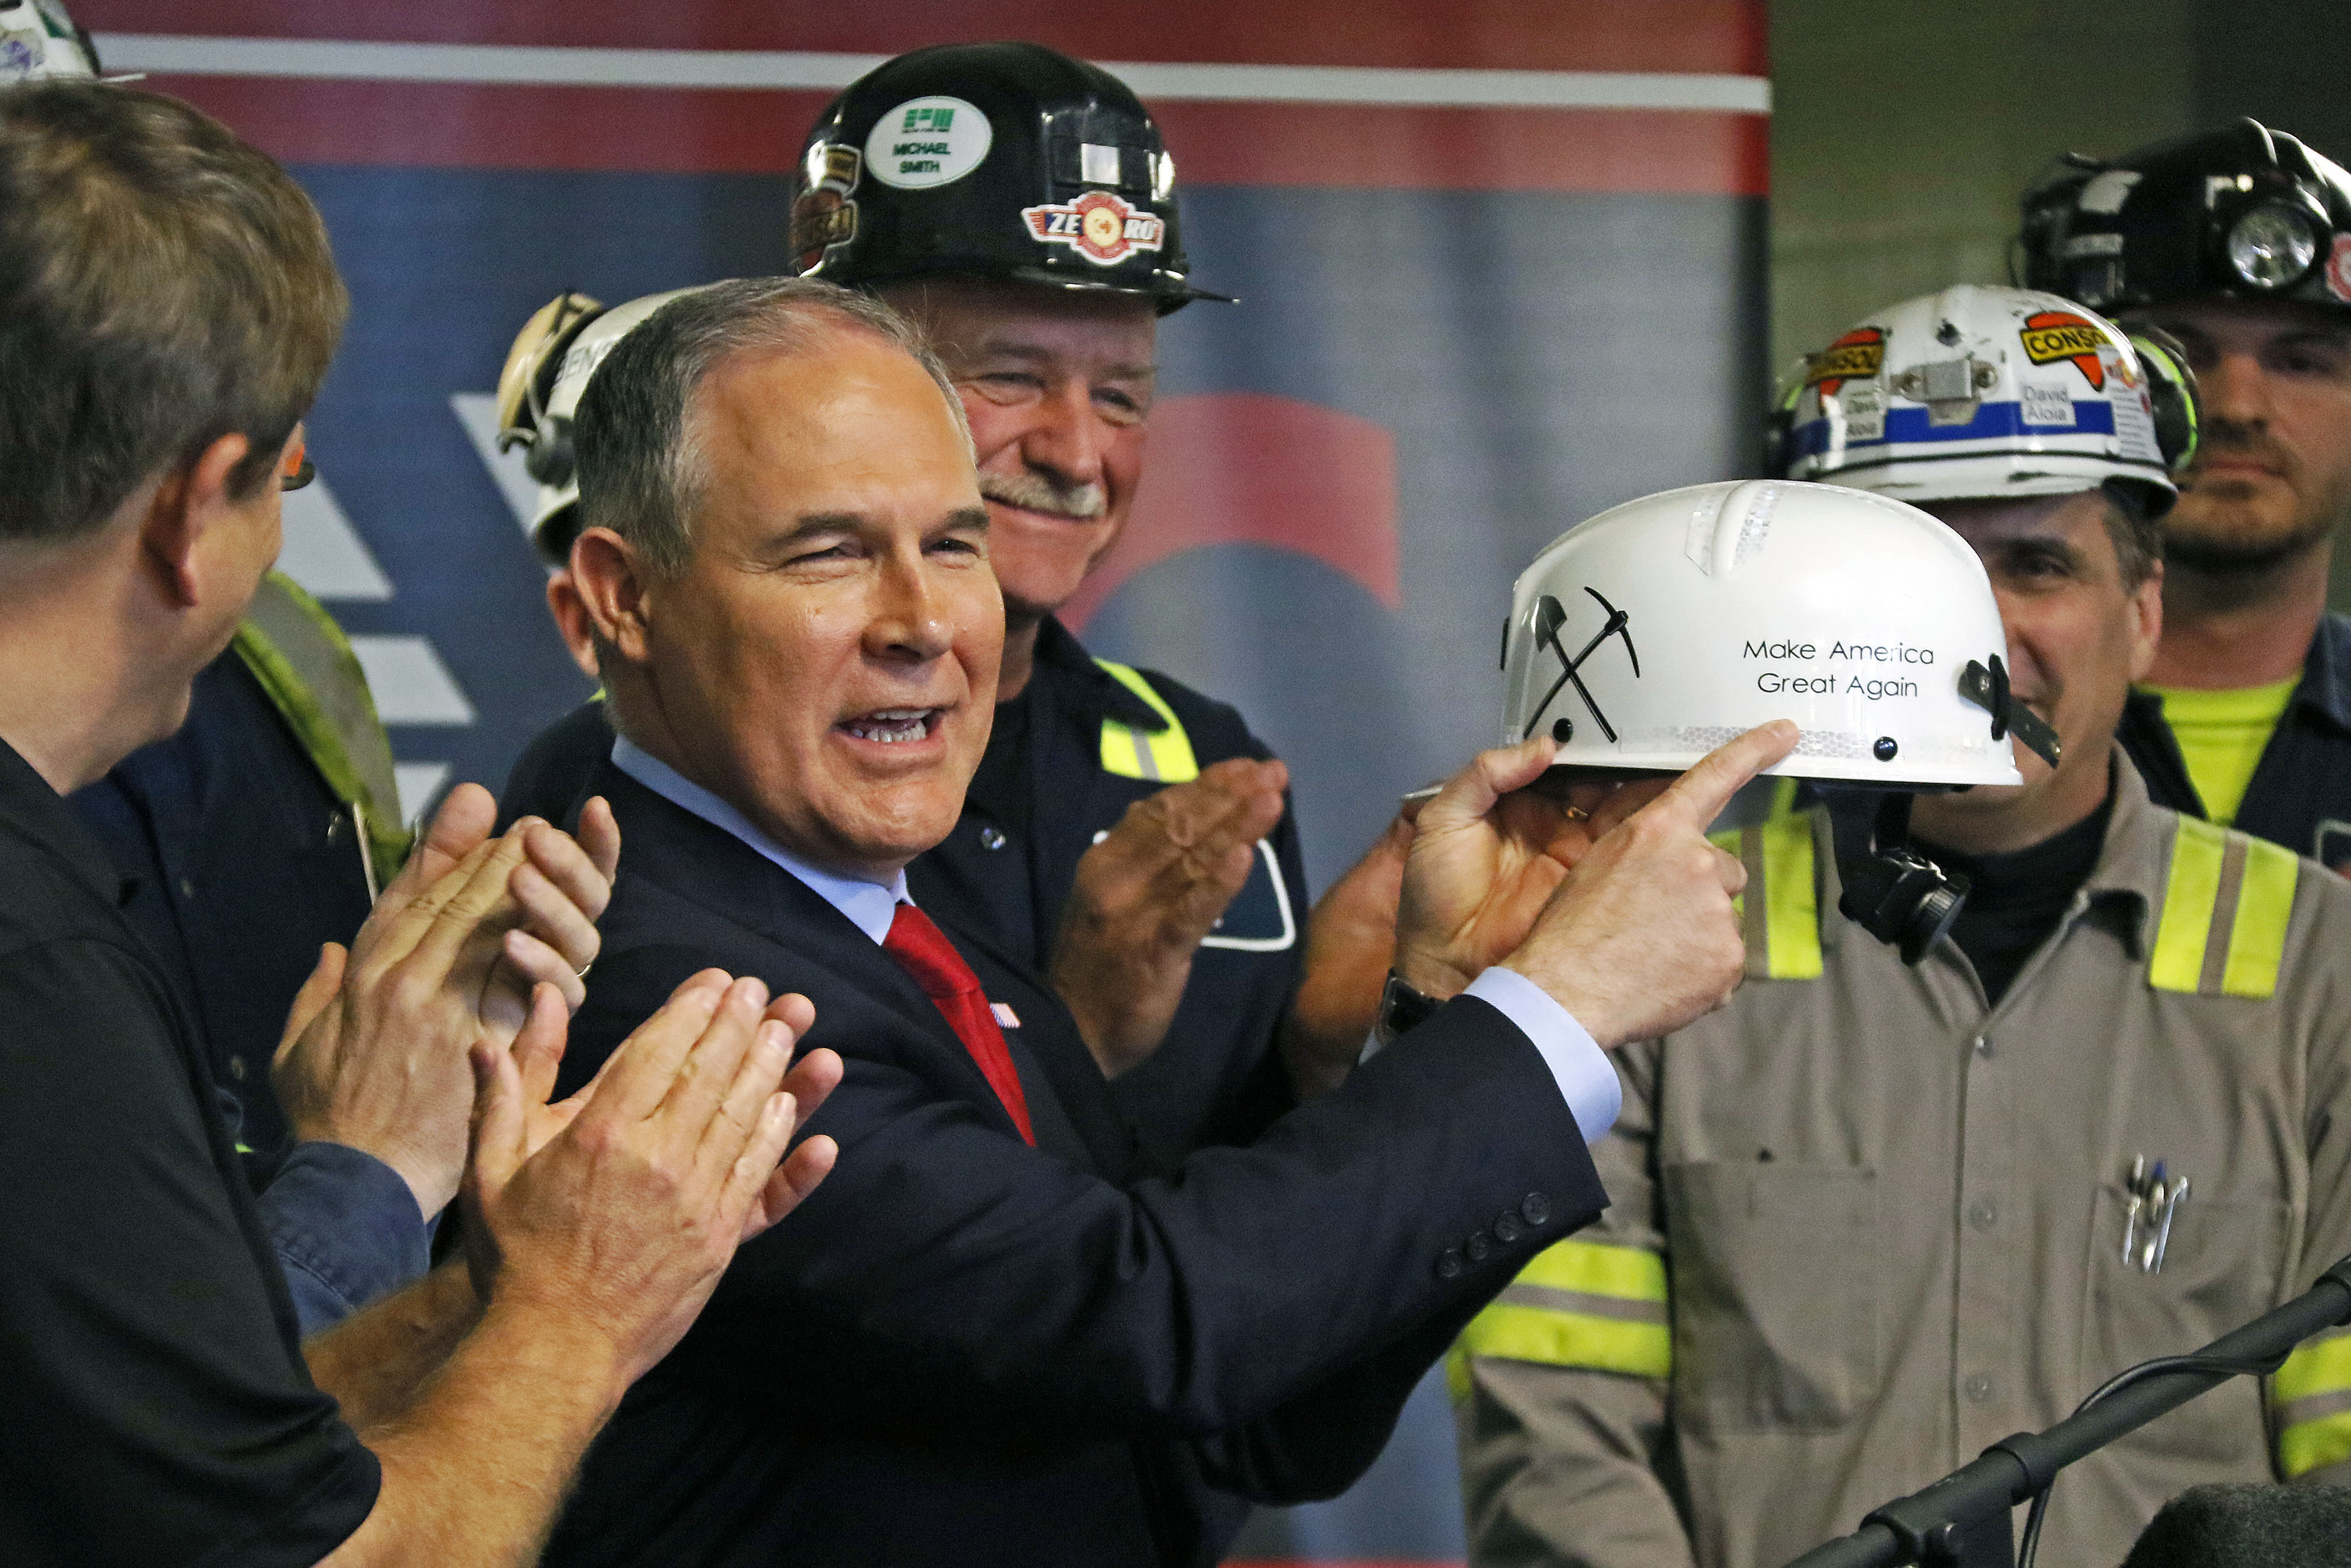 Pruitt EPA Coal Mine U.S. Environmental Protection Agency Administrator Scott Pruitt holds up a hardhat he was given during a visit to Consol Pennsylvania Coal Company's Harvey Mine in Sycamore, Pa., Thursday, April 13, 2017. (AP Photo/Gene J. Puskar)